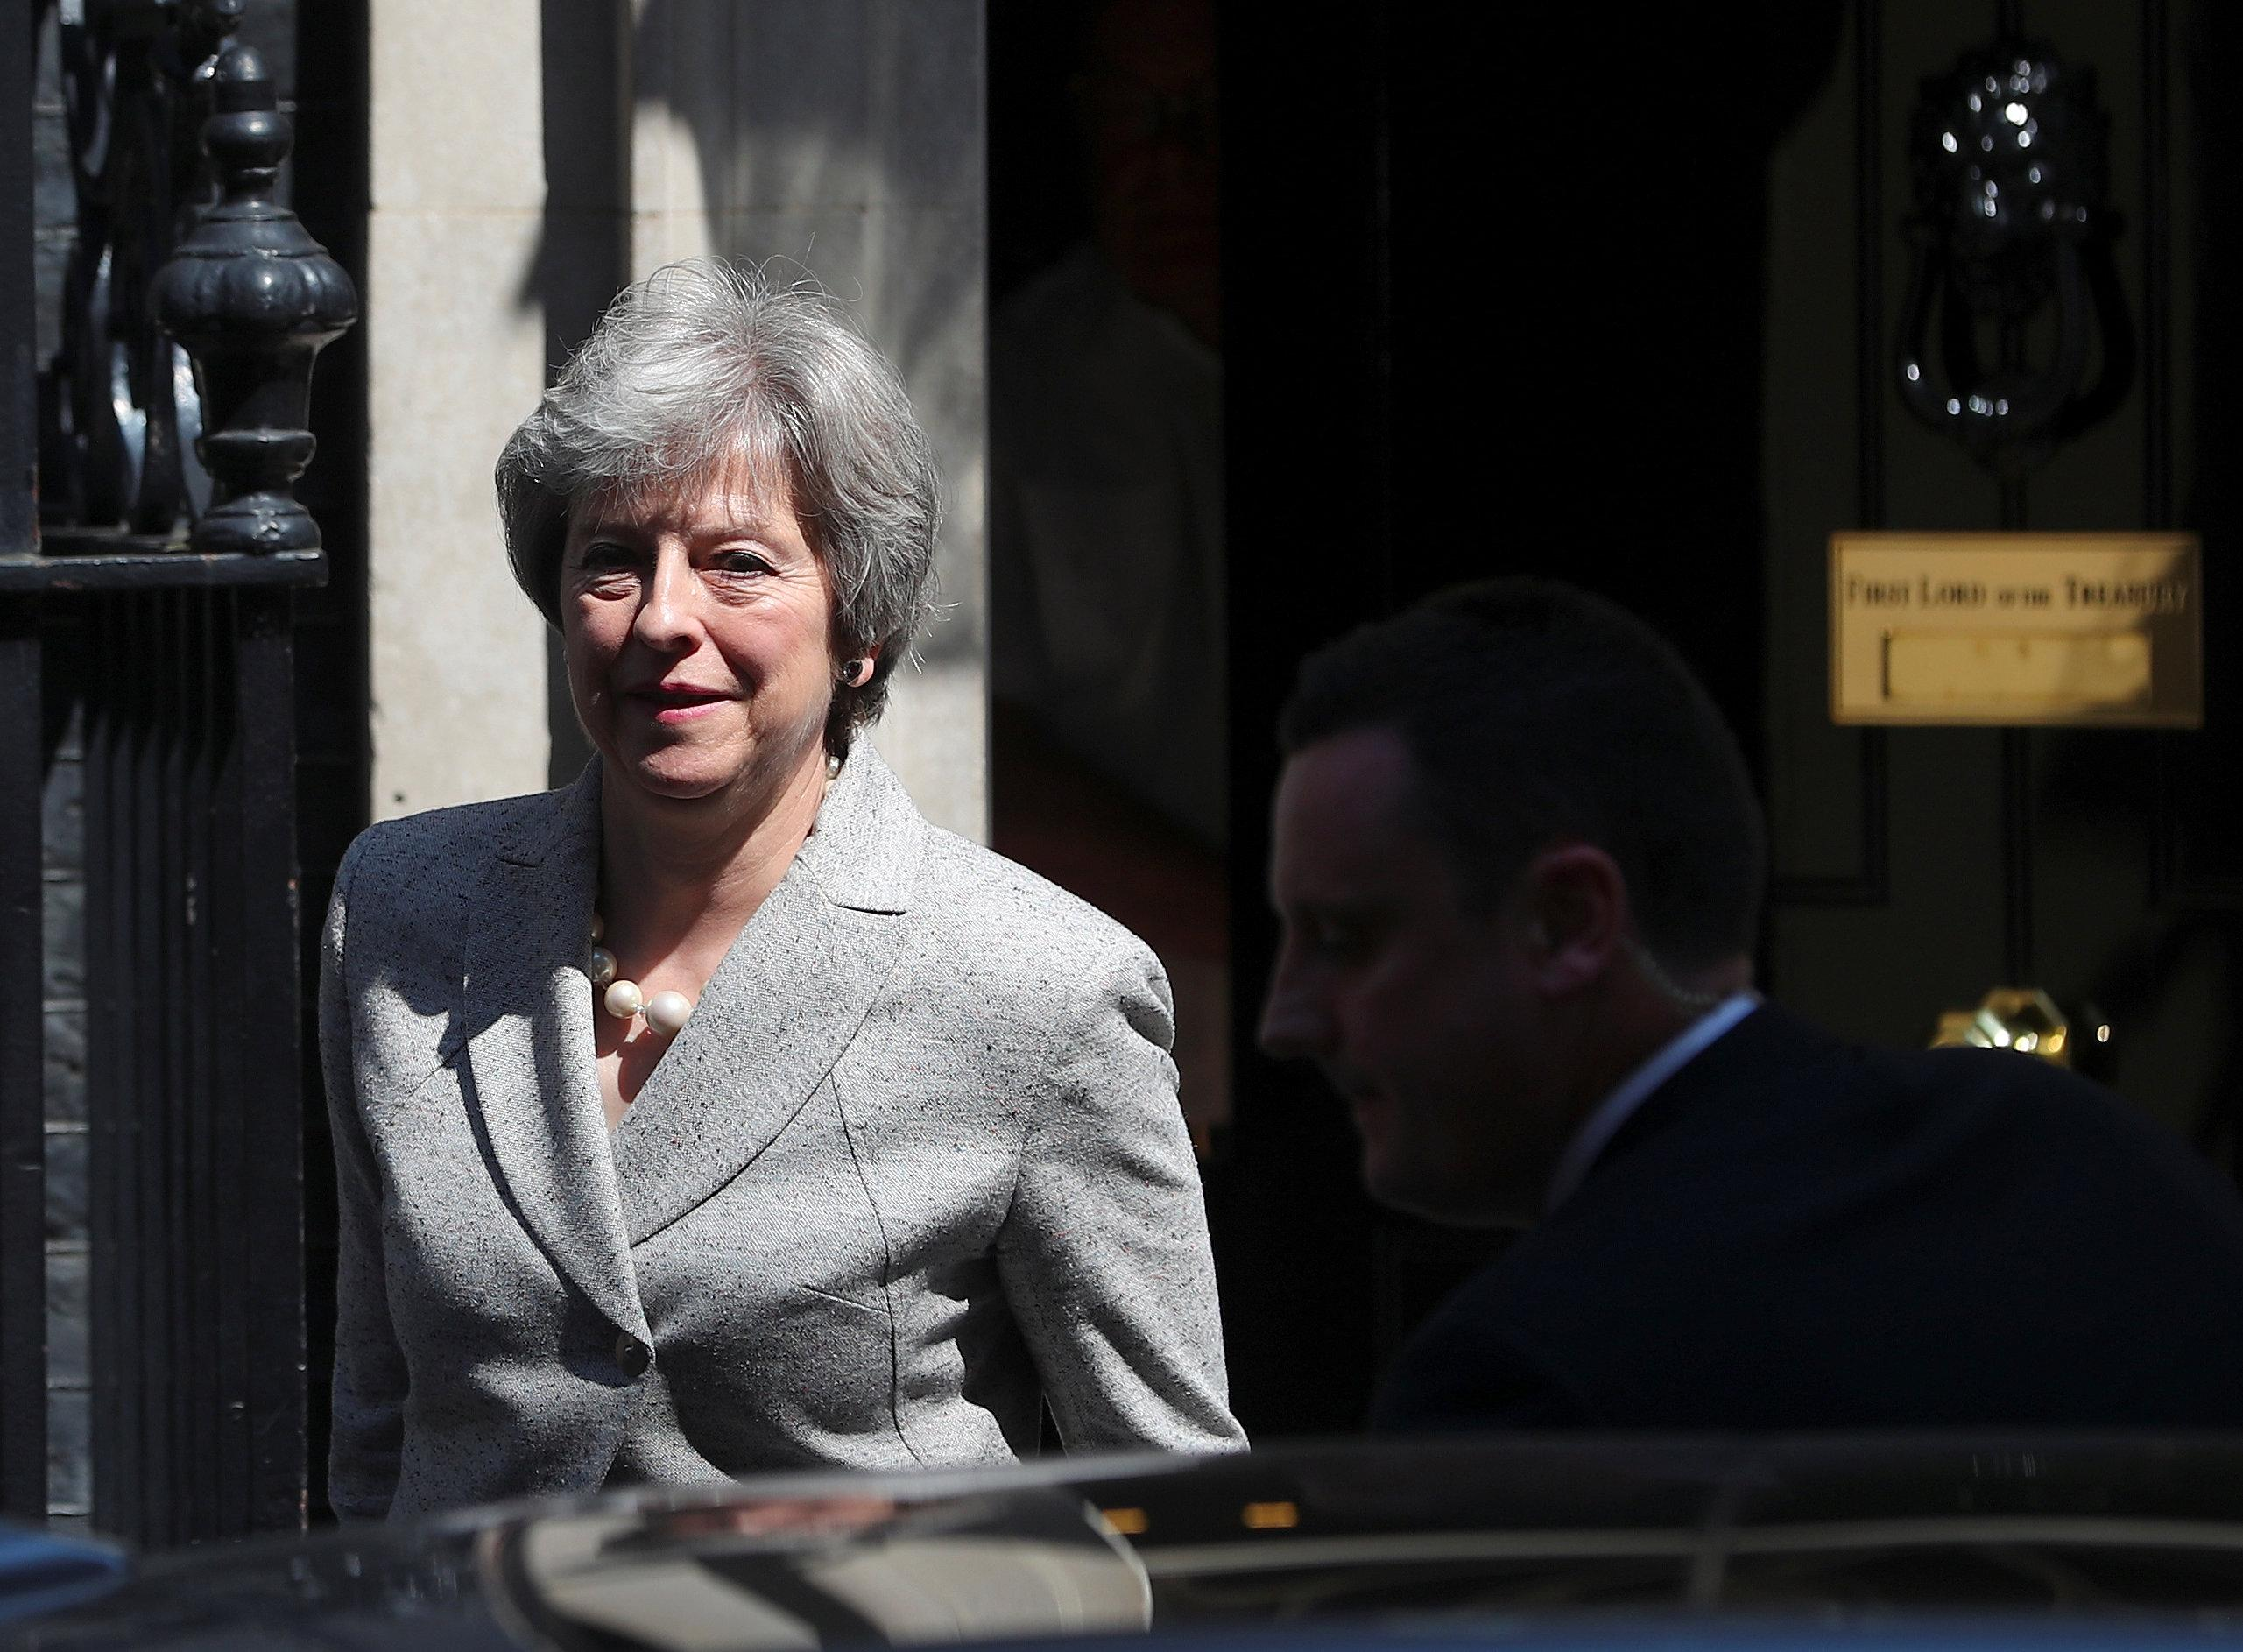 Work on customs plans as a priority, May tells officials